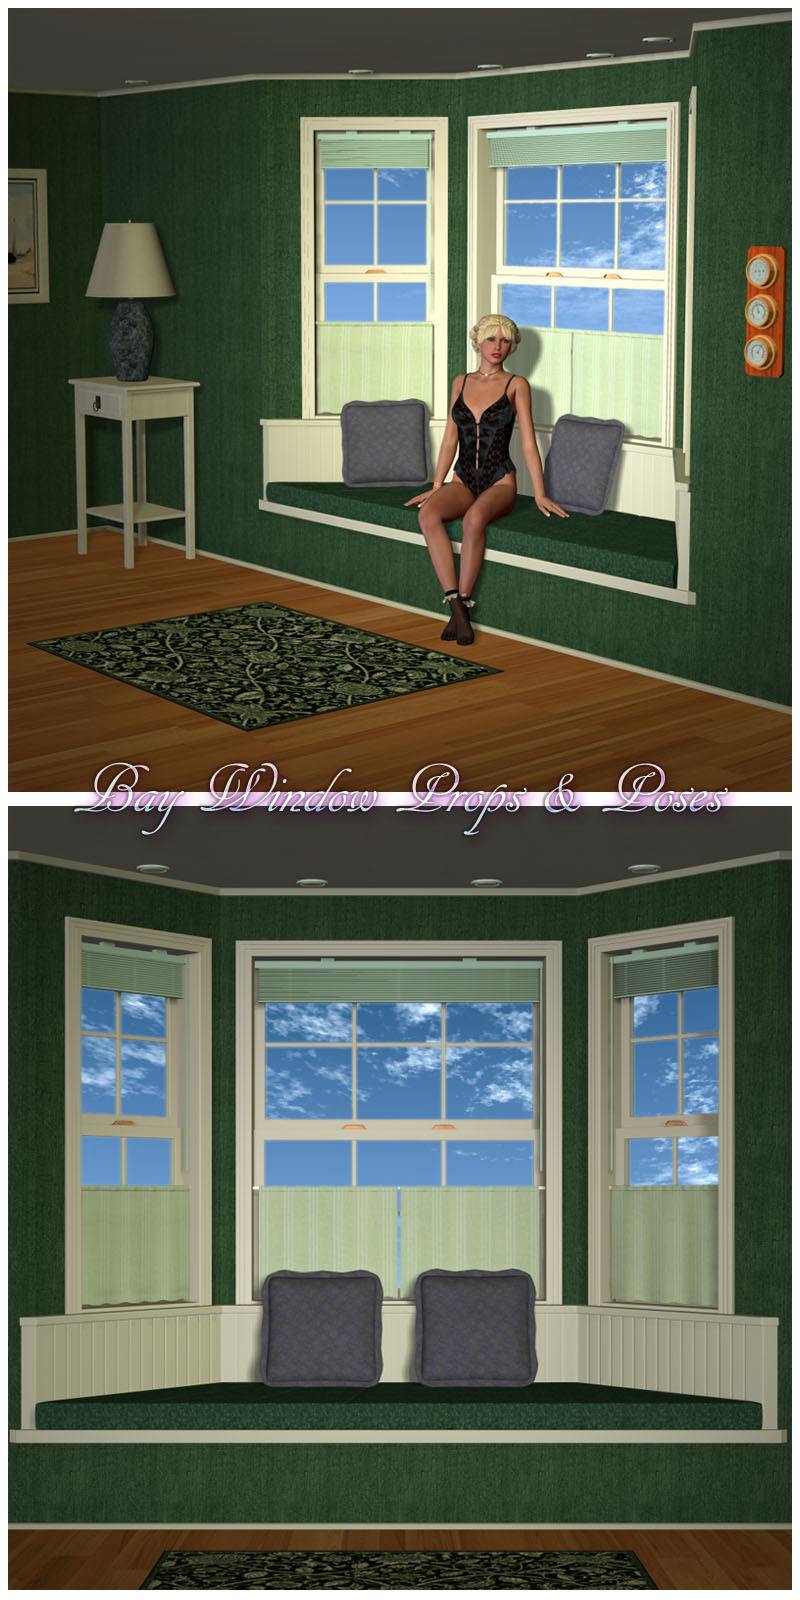 Bay Window Props & Pose Set